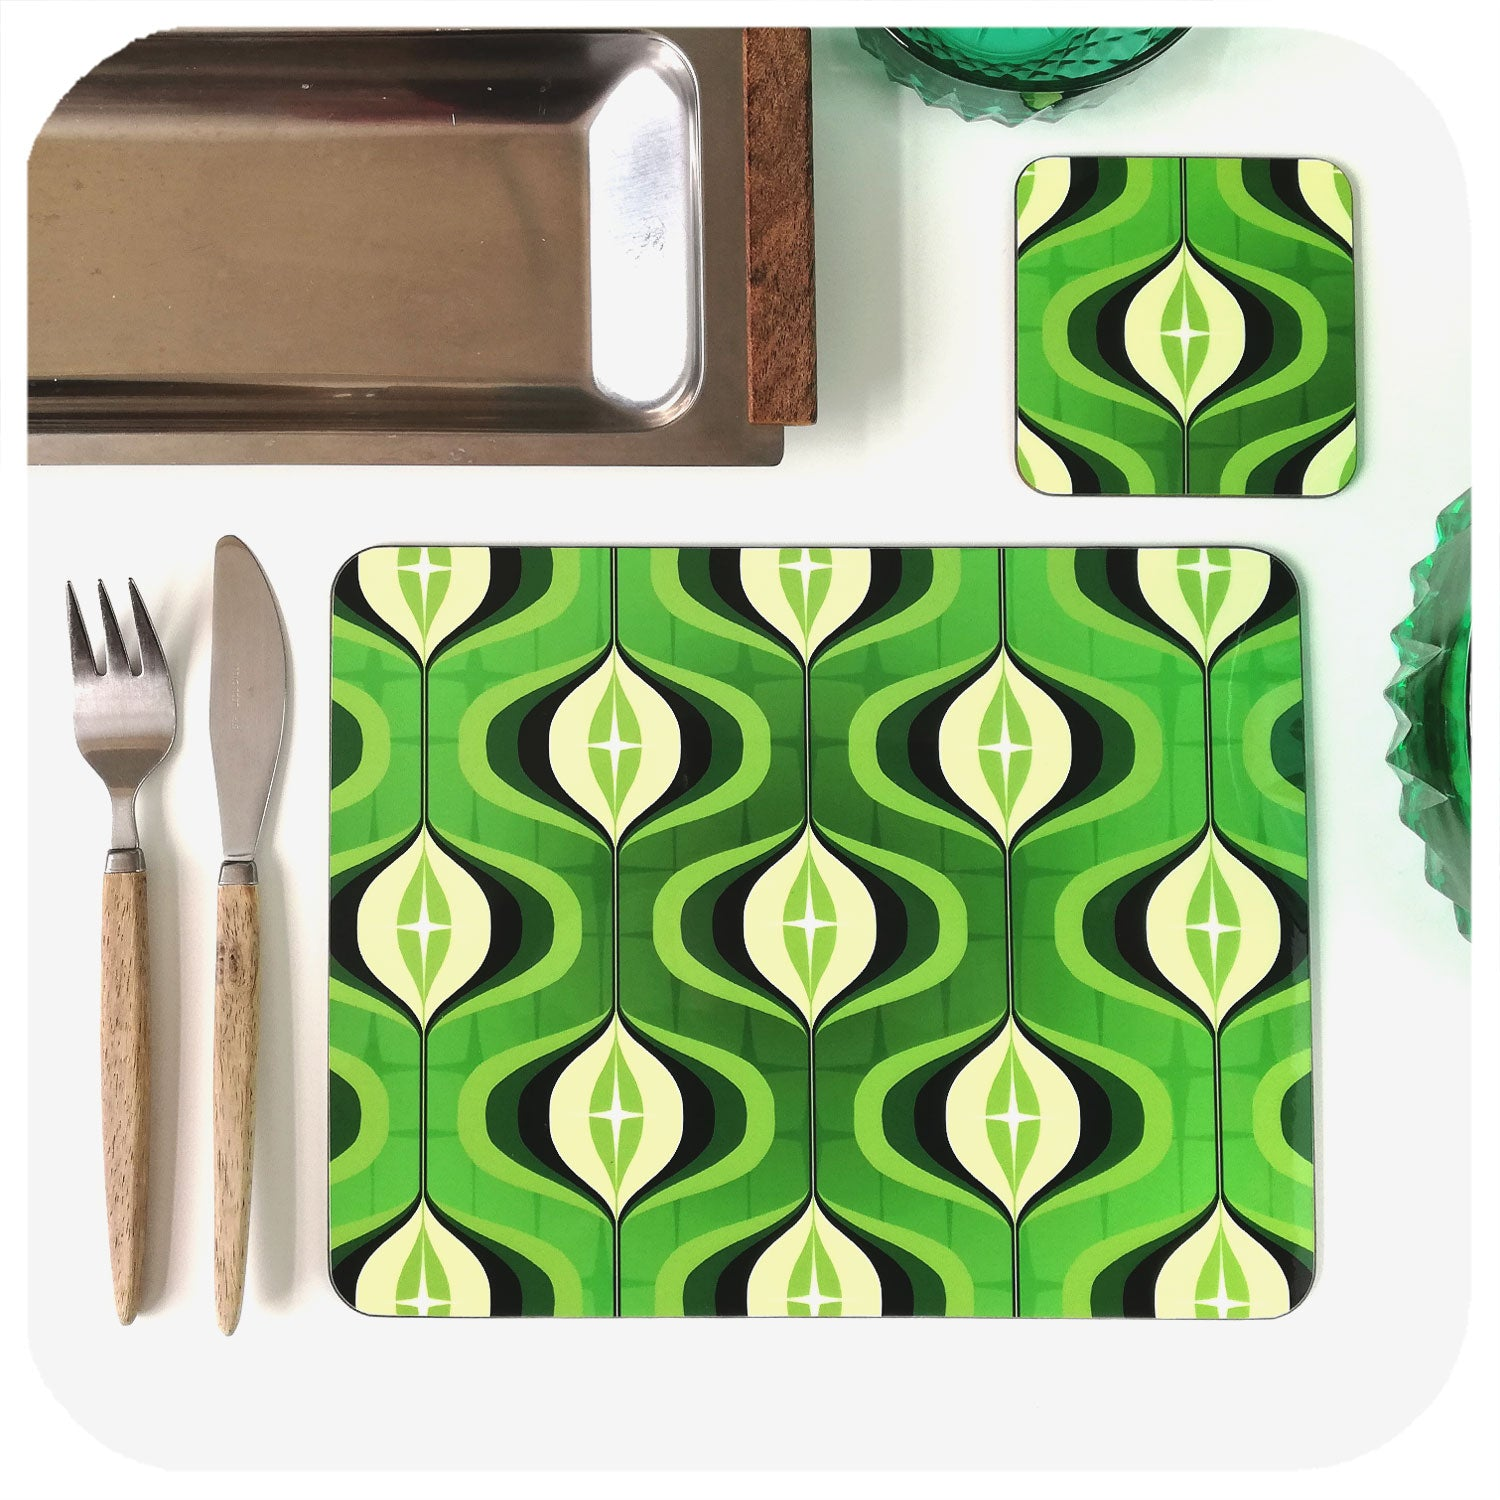 1970s Green Op Art Placemat & Coaster | The Inkabilly Emporium